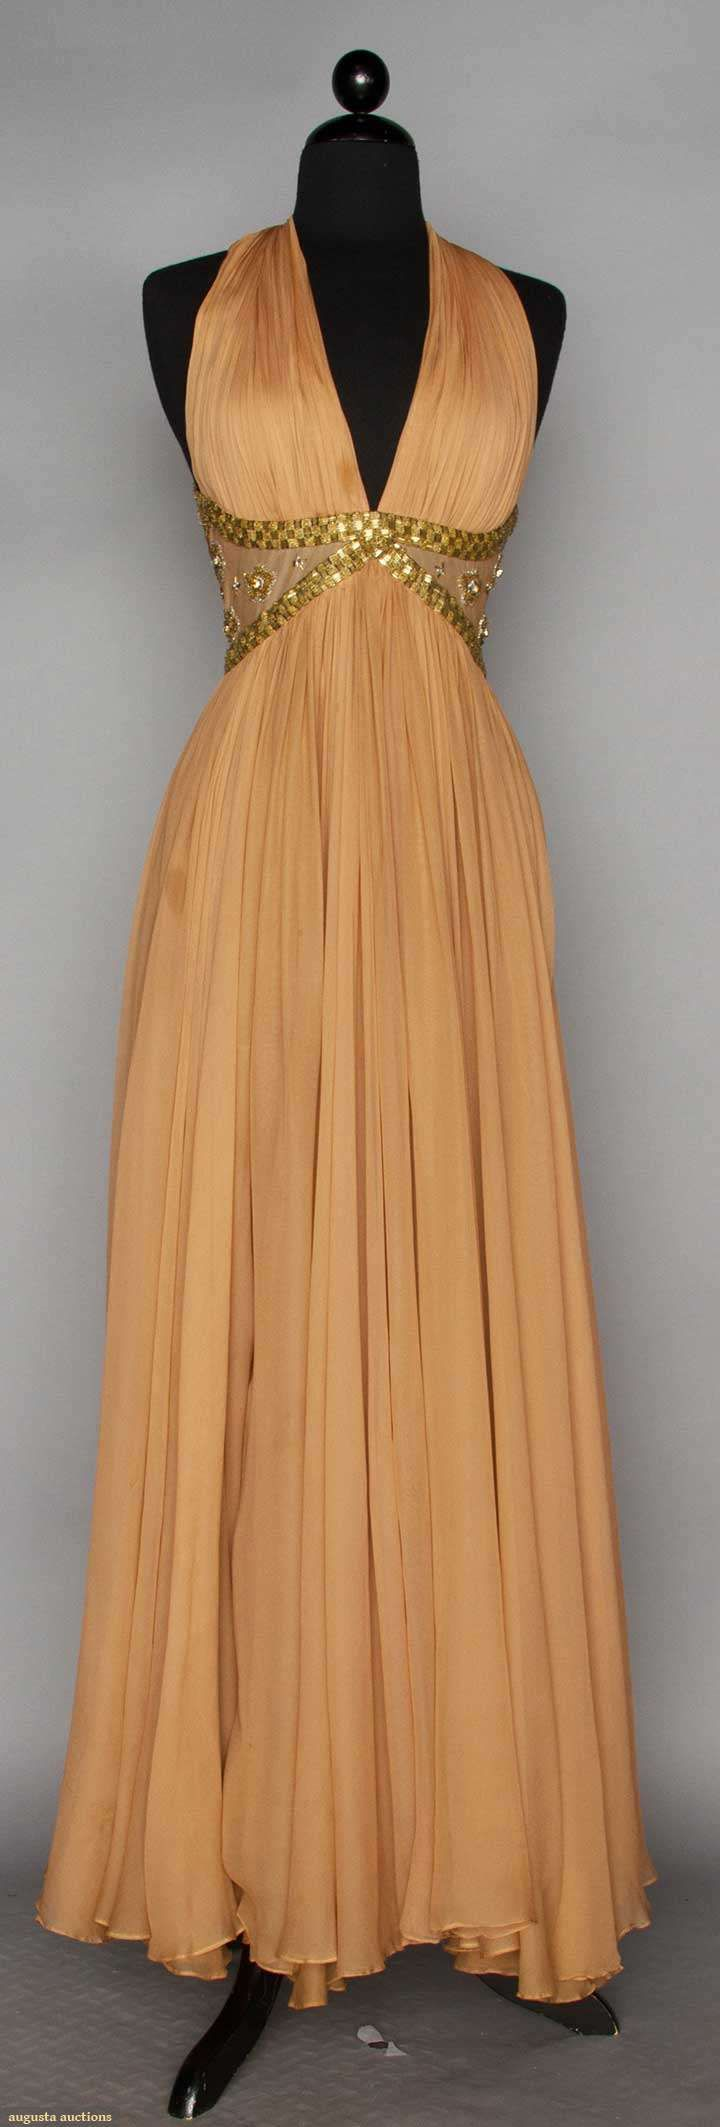 Two evening gowns s u s augusta auctions november